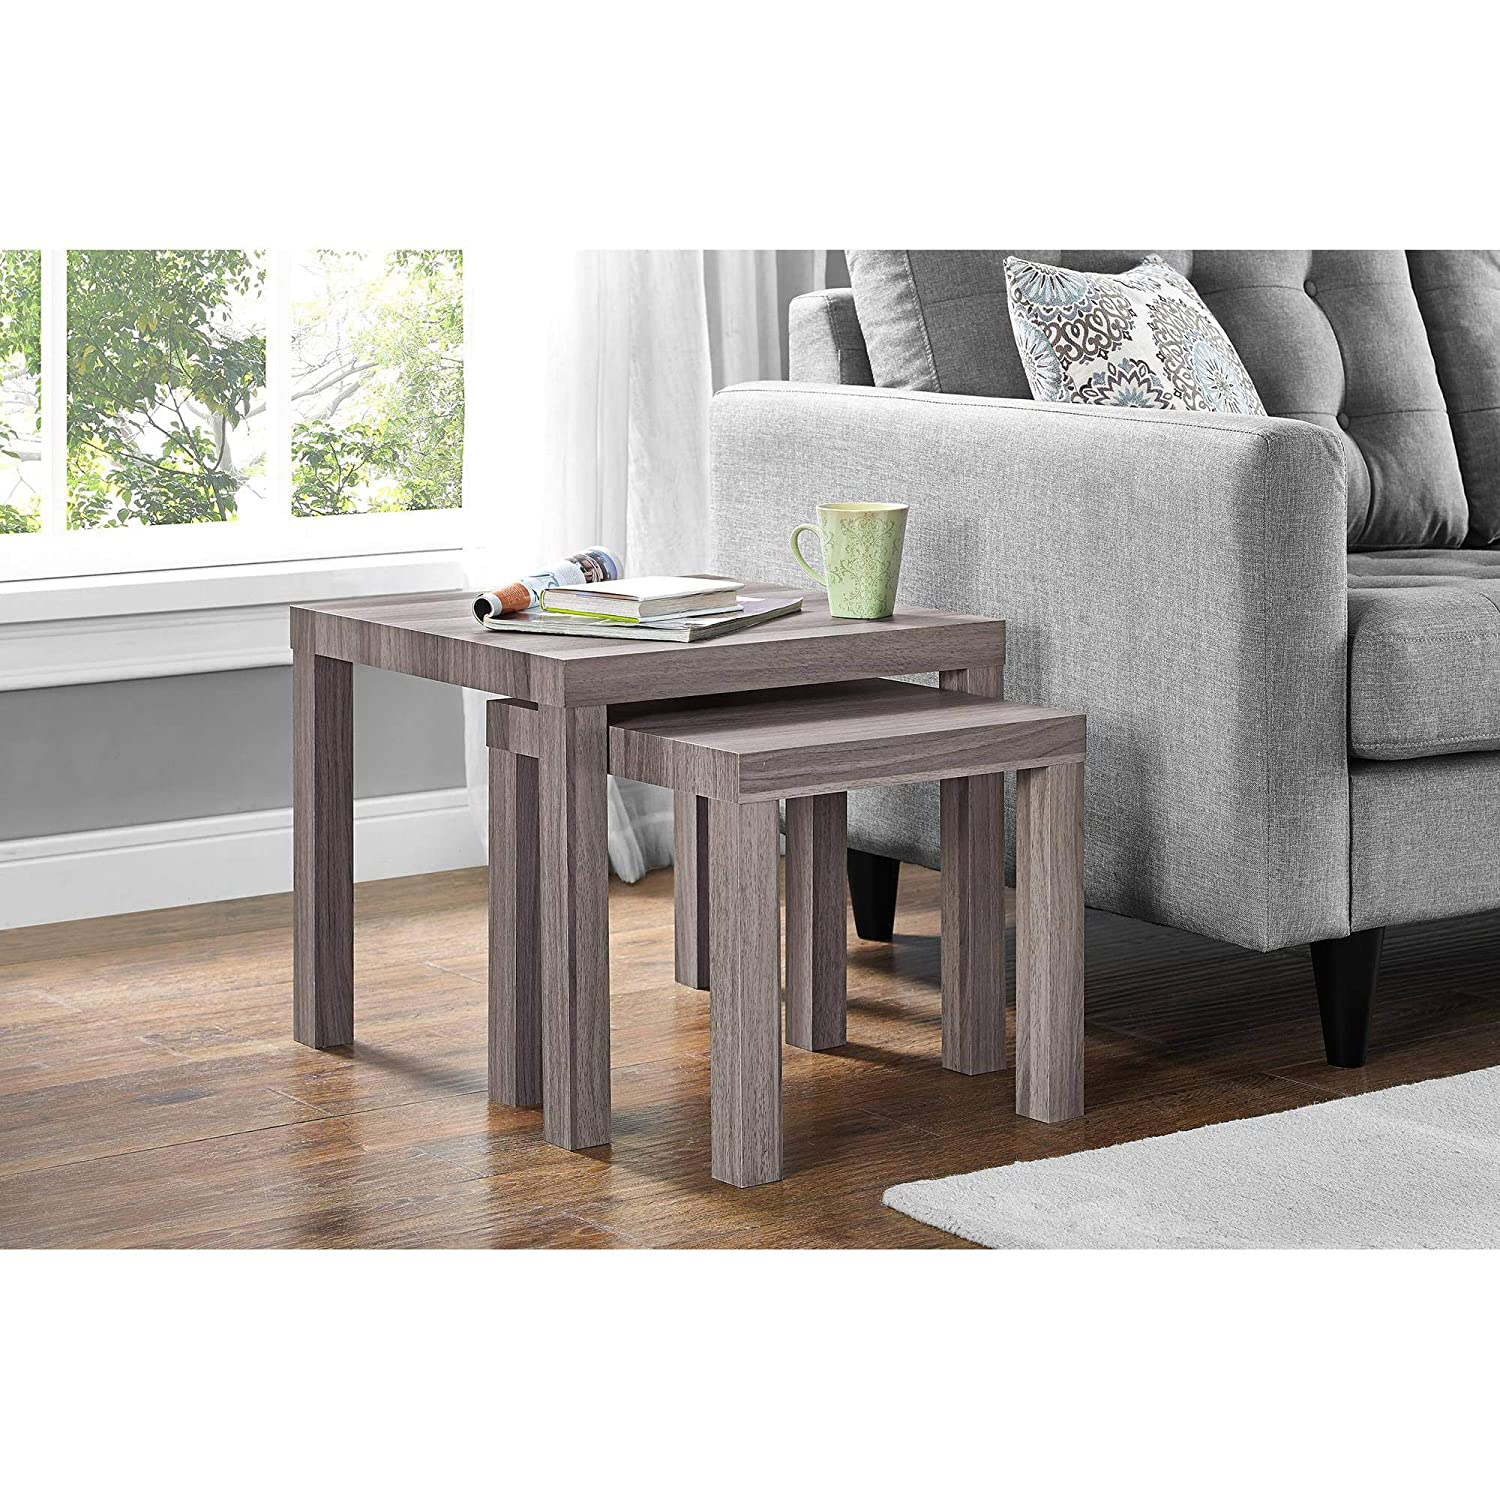 Parsons Rustic Living Dining Room Side Nesting Coffee Tables, 2-Piece Table  Set, Rustic Oak